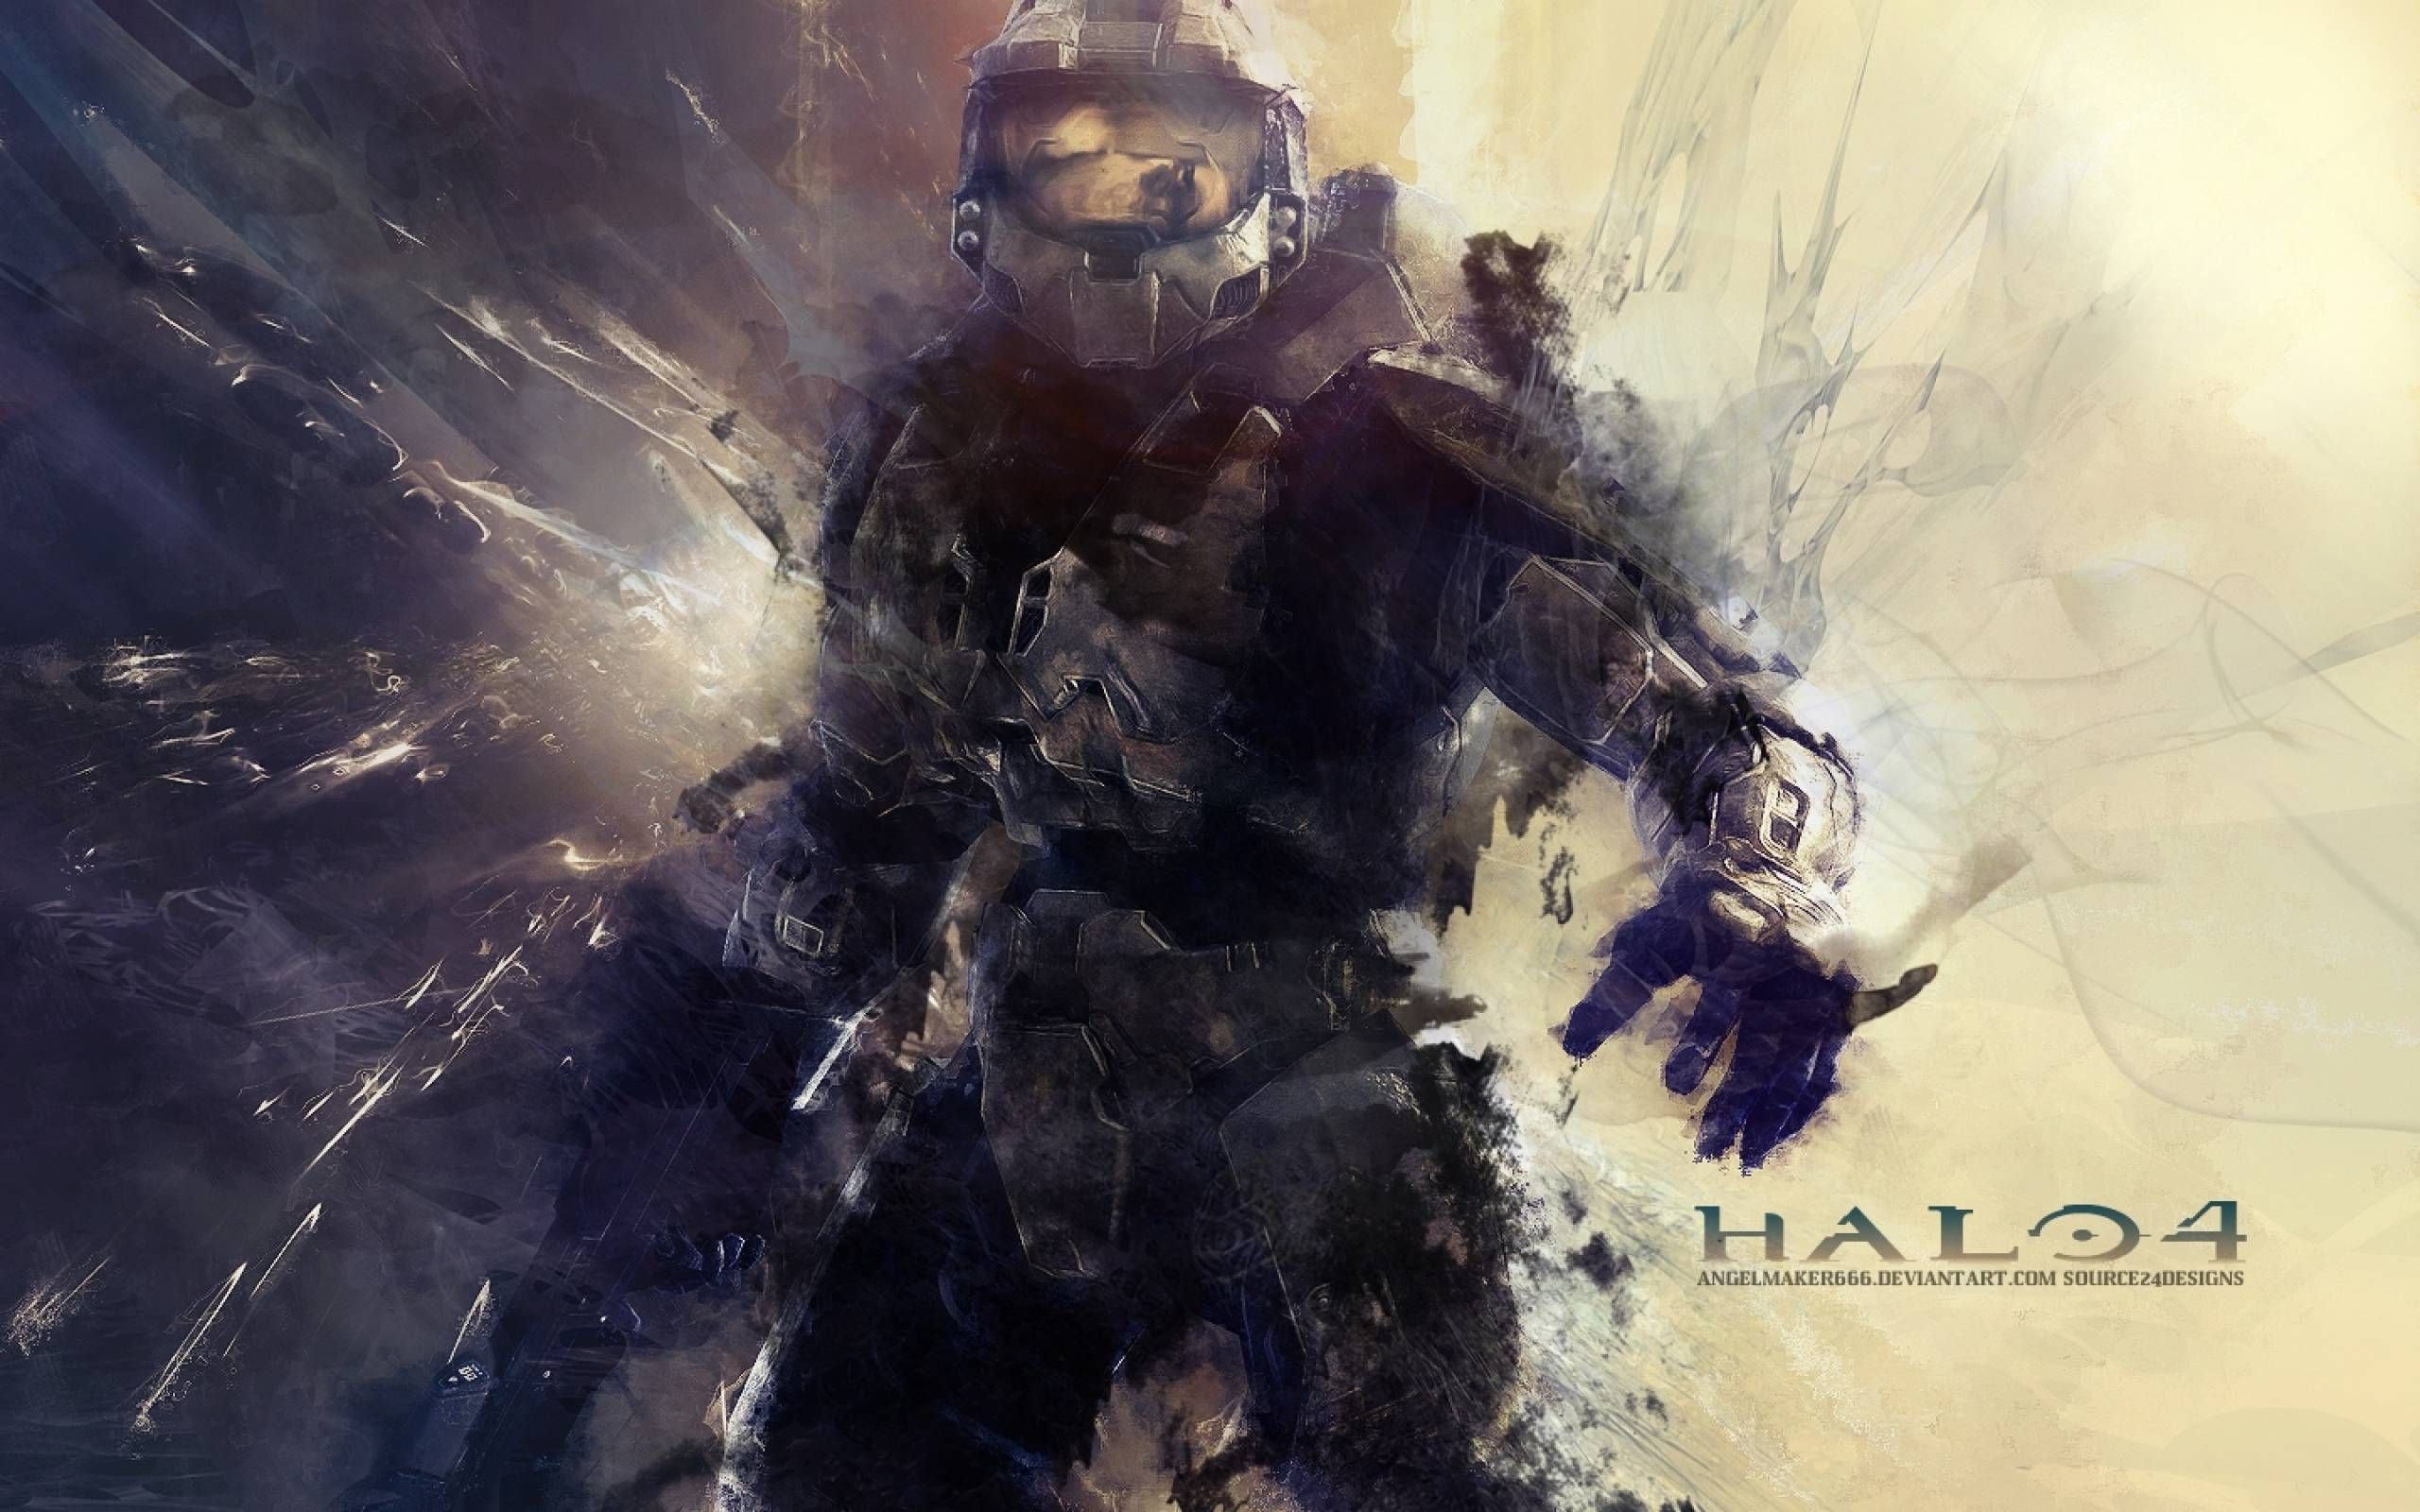 87 Halo 4 Hd Wallpapers Backgrounds Wallpaper Abyss Halo